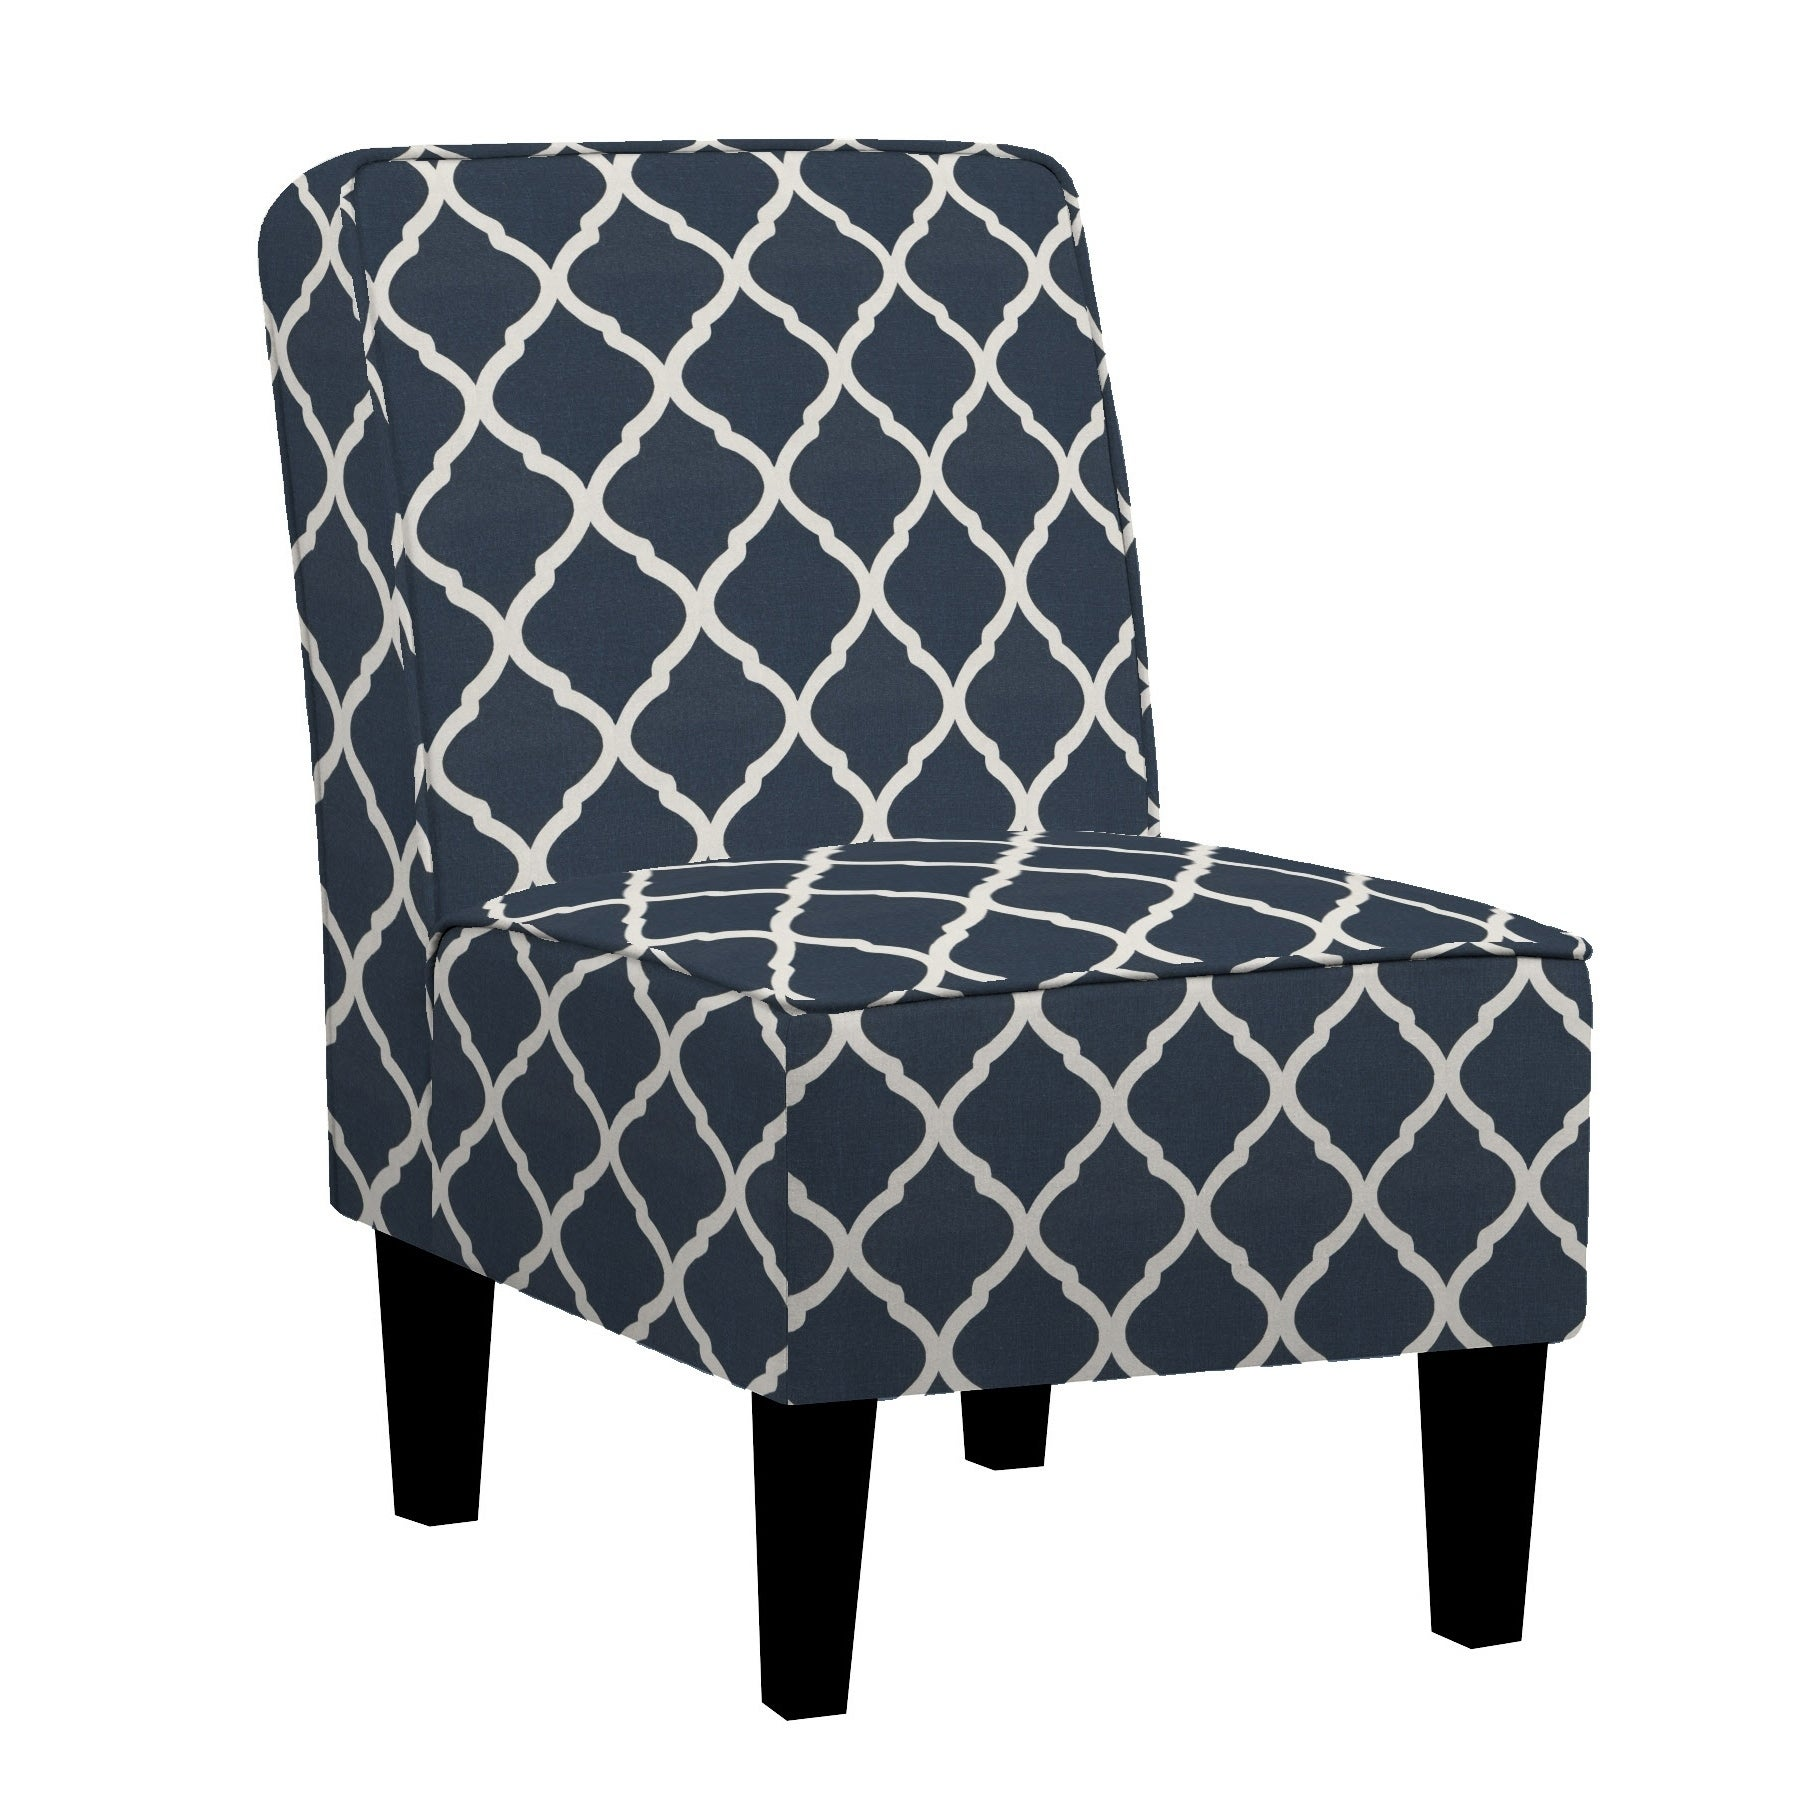 Handy living brodee armless chair in navy blue trellis